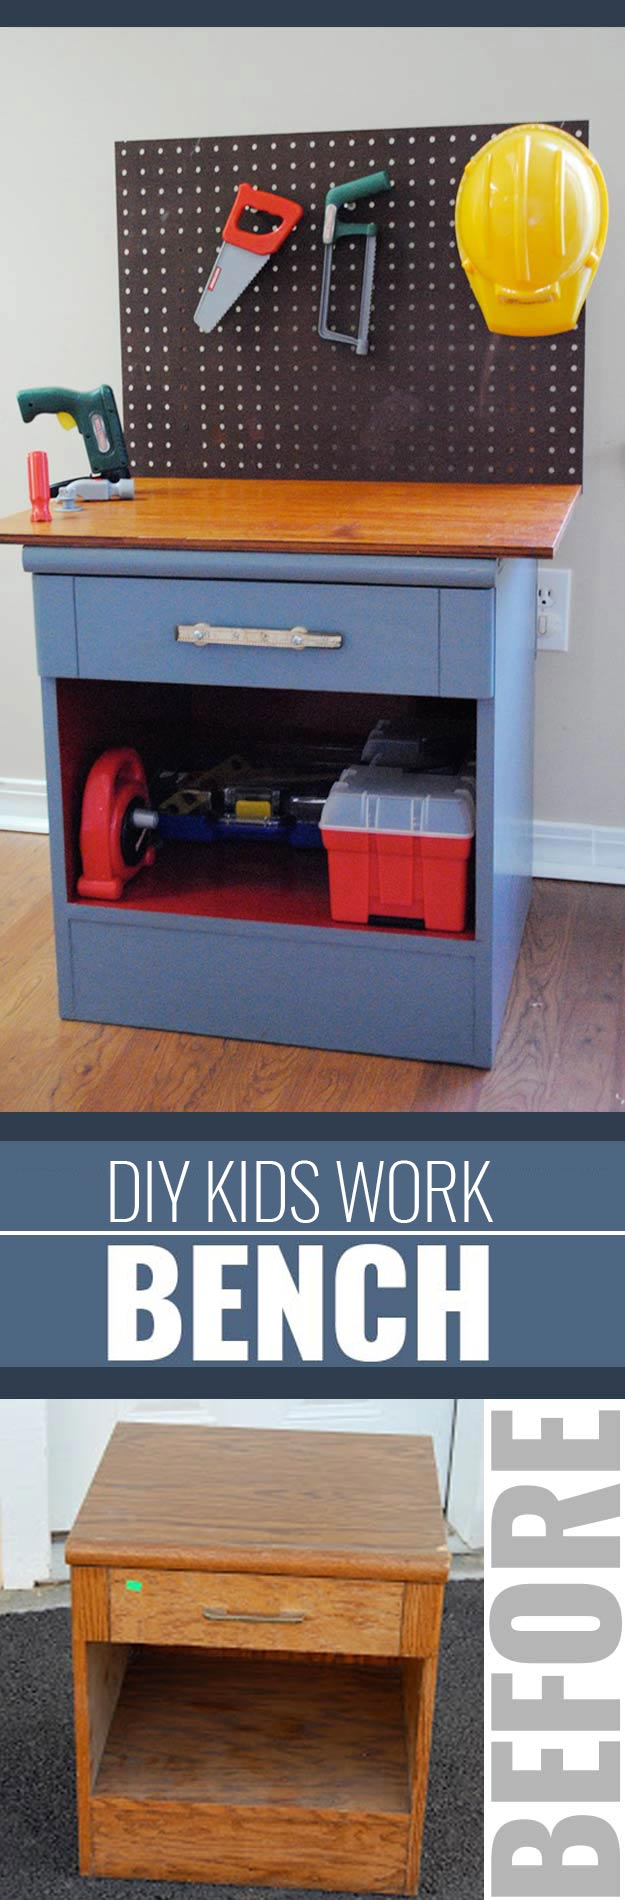 DIY Christmas Gifts for Kids - Homemade Christmas Presents for Children and Christmas Crafts for Kids | Toys, Dress Up Clothes, Dolls and Fun Games | Step by Step tutorials and instructions for cool gifts to make for boys and girls | Kiddie Workbench